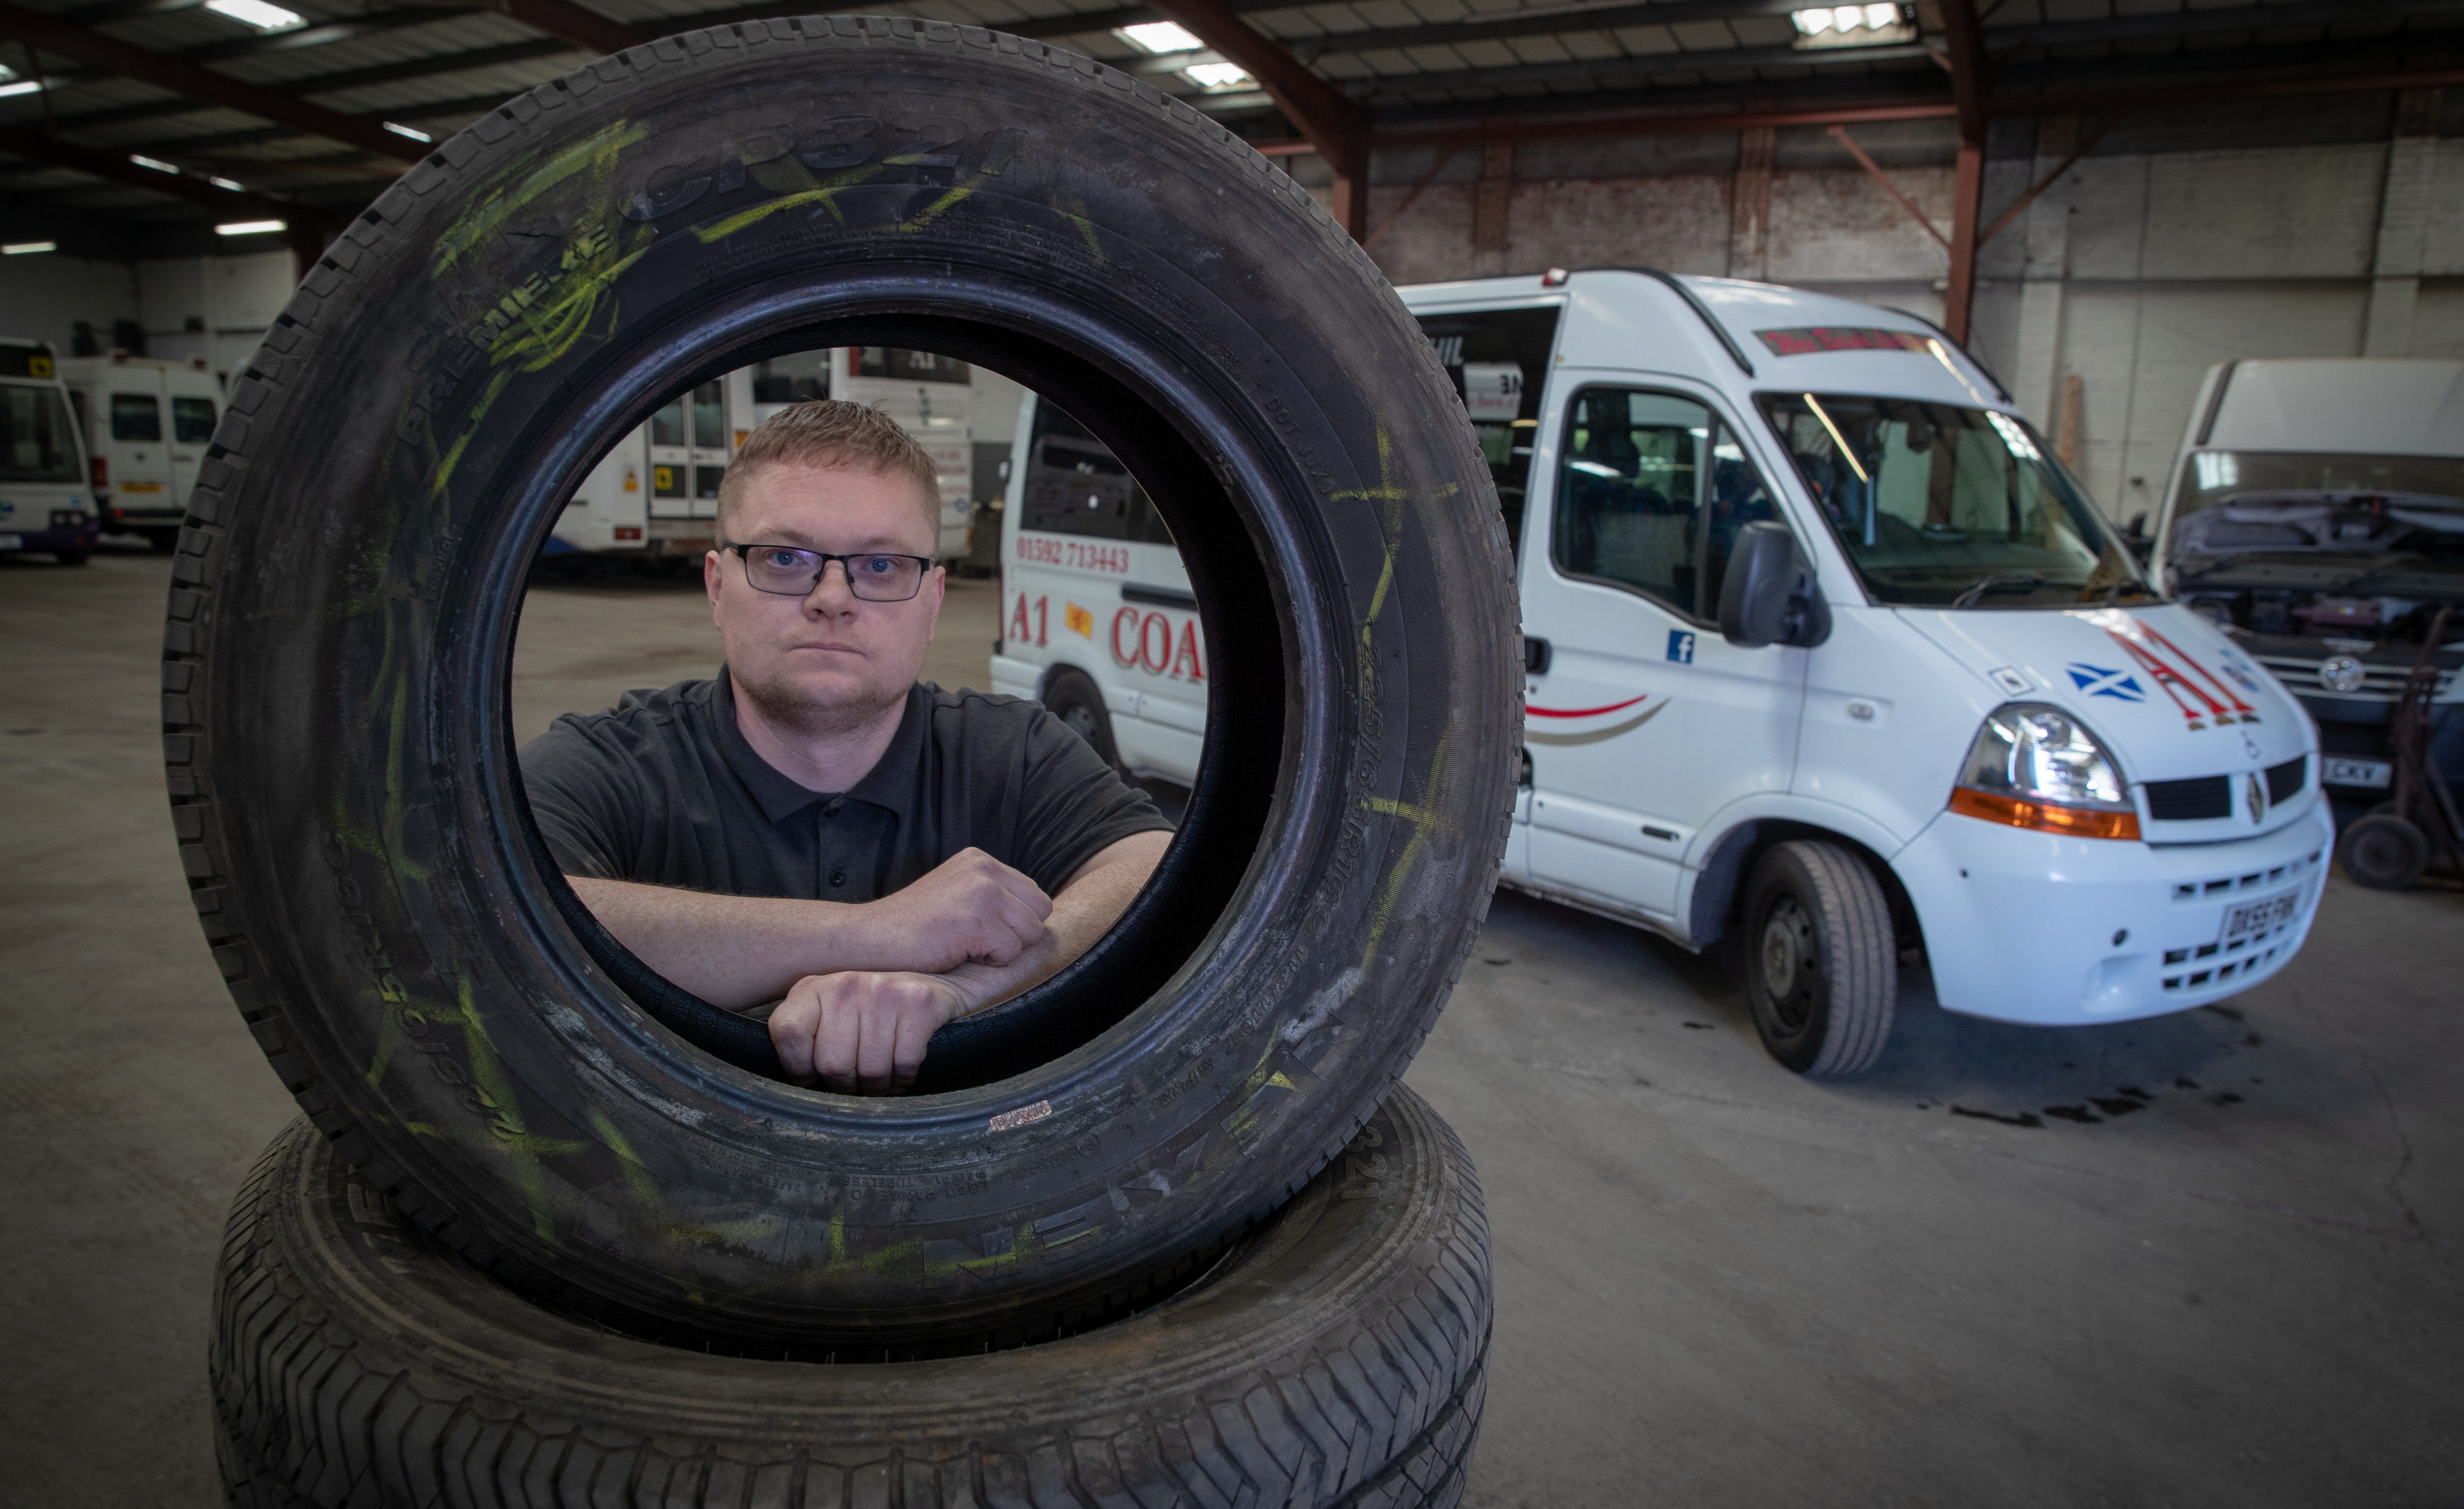 A1 maintenance manager Paul Richards with some of the damaged tyres